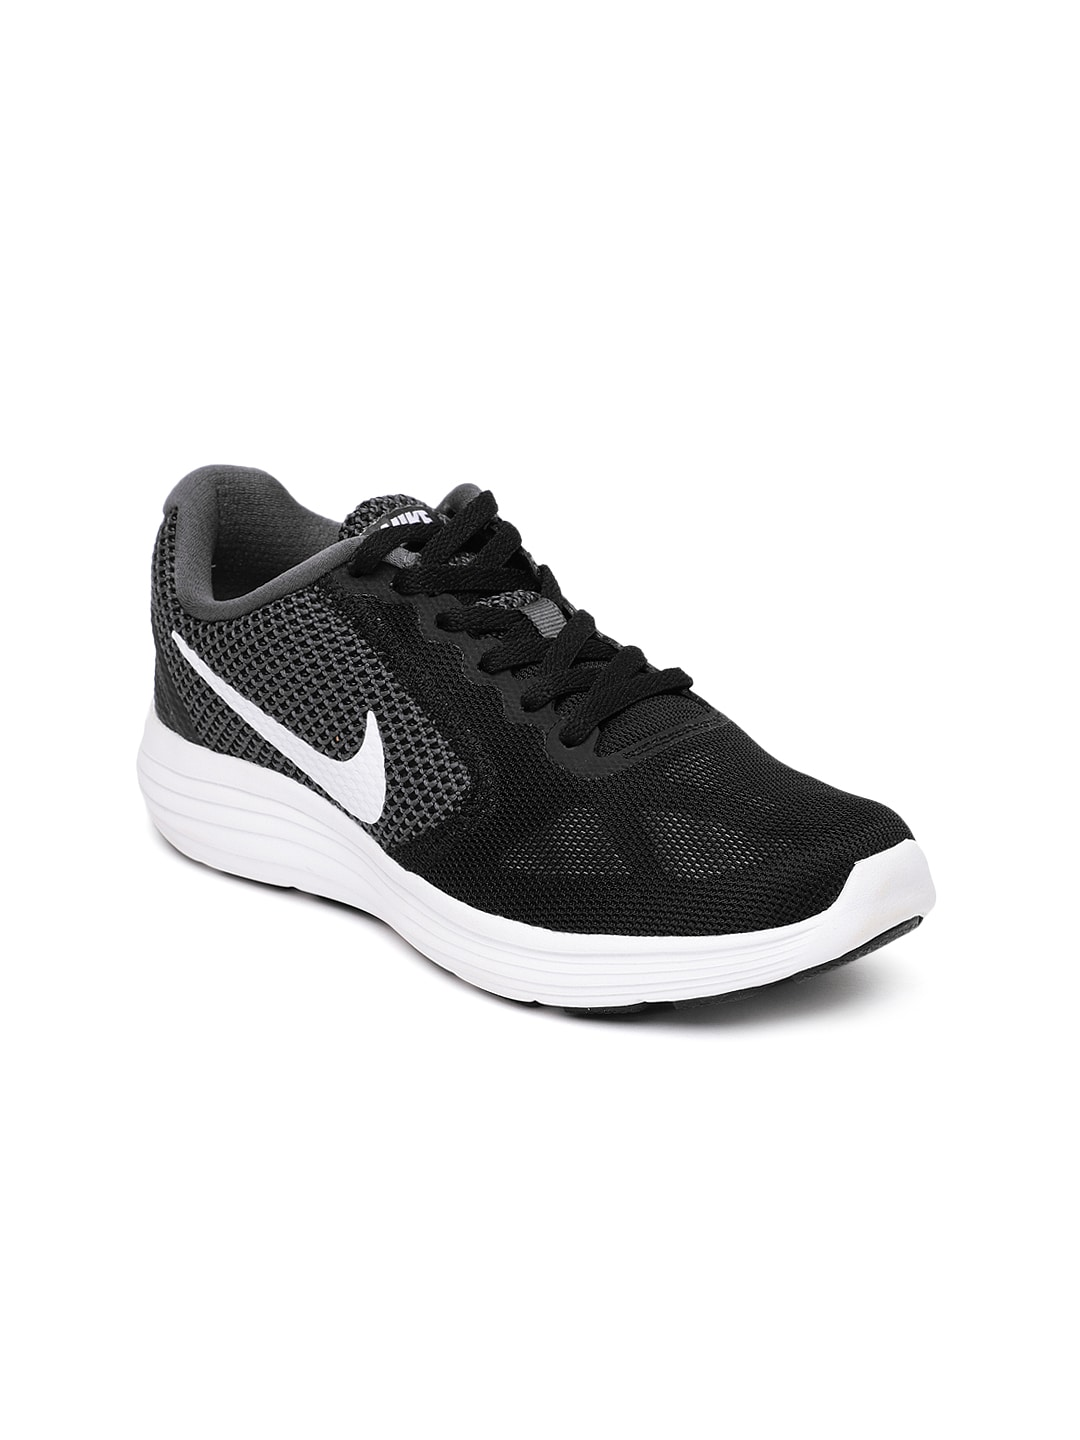 5013b2a7bfa Nike - Shop for Nike Apparels Online in India